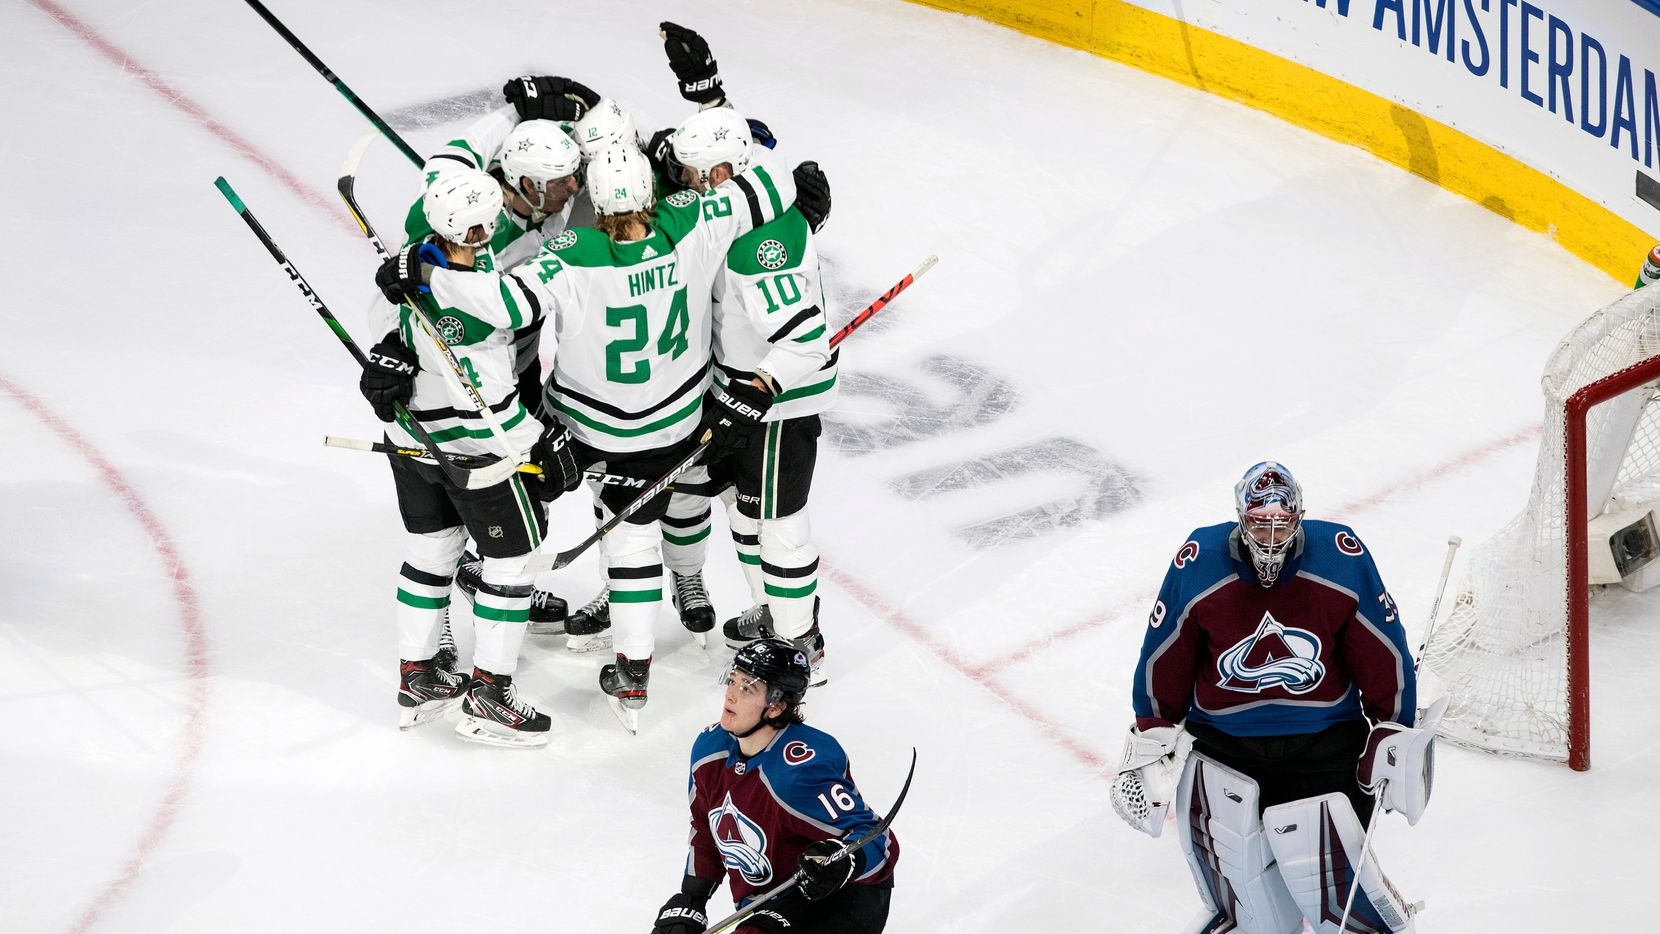 Dallas Stars, top, celebrate a goal against Colorado Avalanche goalie Pavel Francouz (39) as Avalanche's Nikita Zadorov (16) reacts during second-period NHL Western Conference Stanley Cup playoff hockey game action in Edmonton, Alberta, Monday, Aug. 24, 2020.